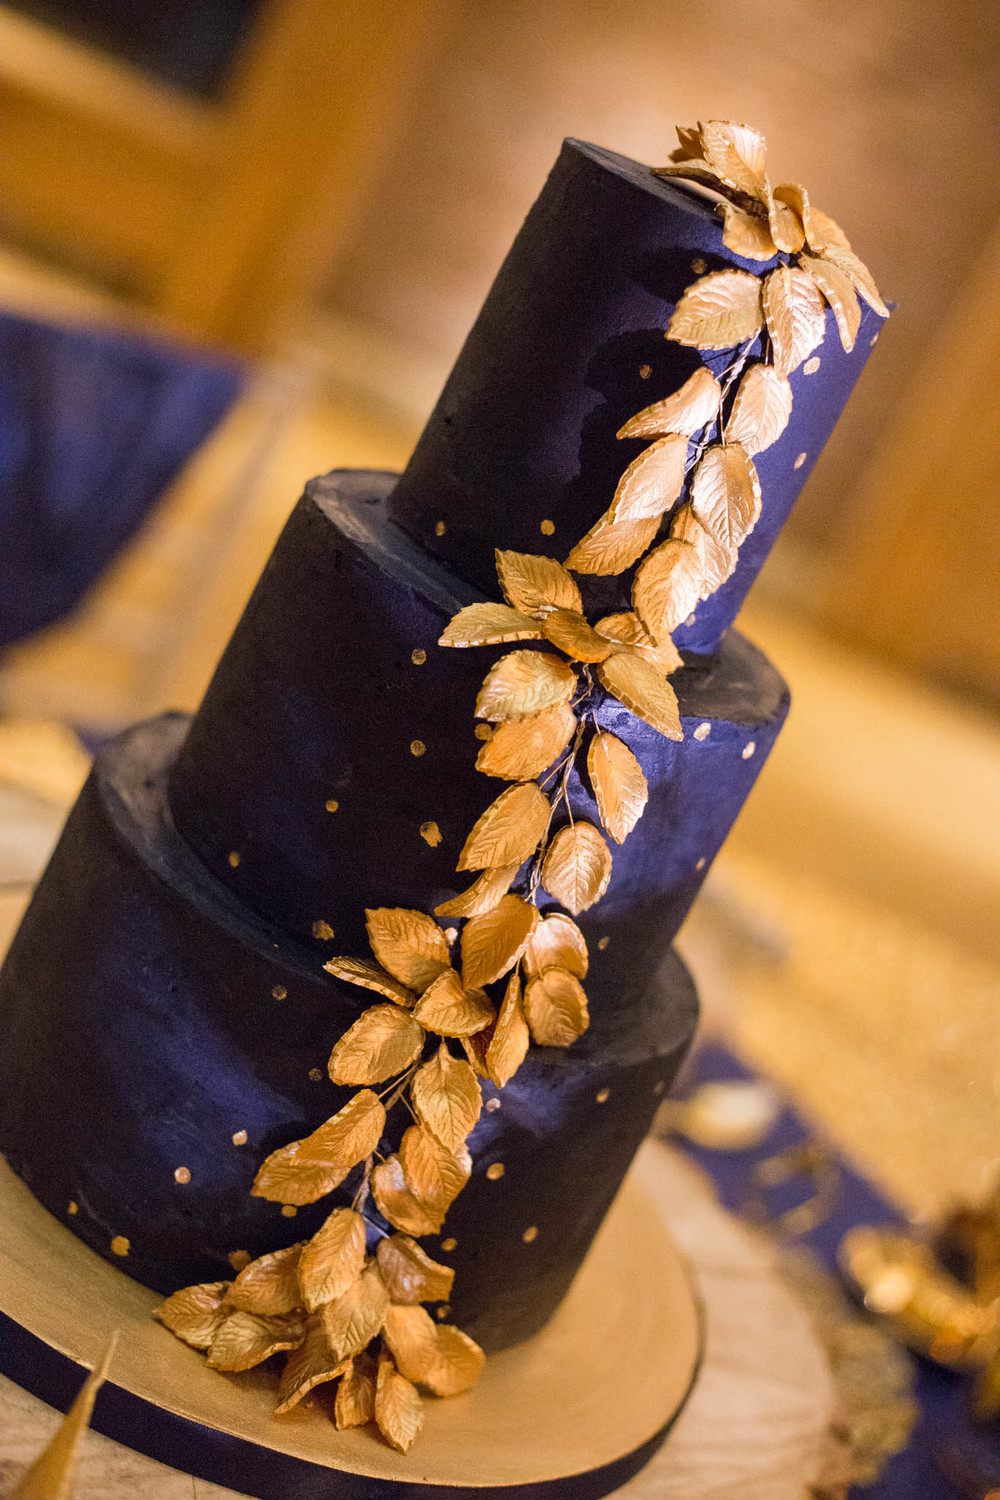 starry-night-themed-wedding-starry-night-themed-shoot-navy-and-gold-wedding-palette-laura-grace-photography-164